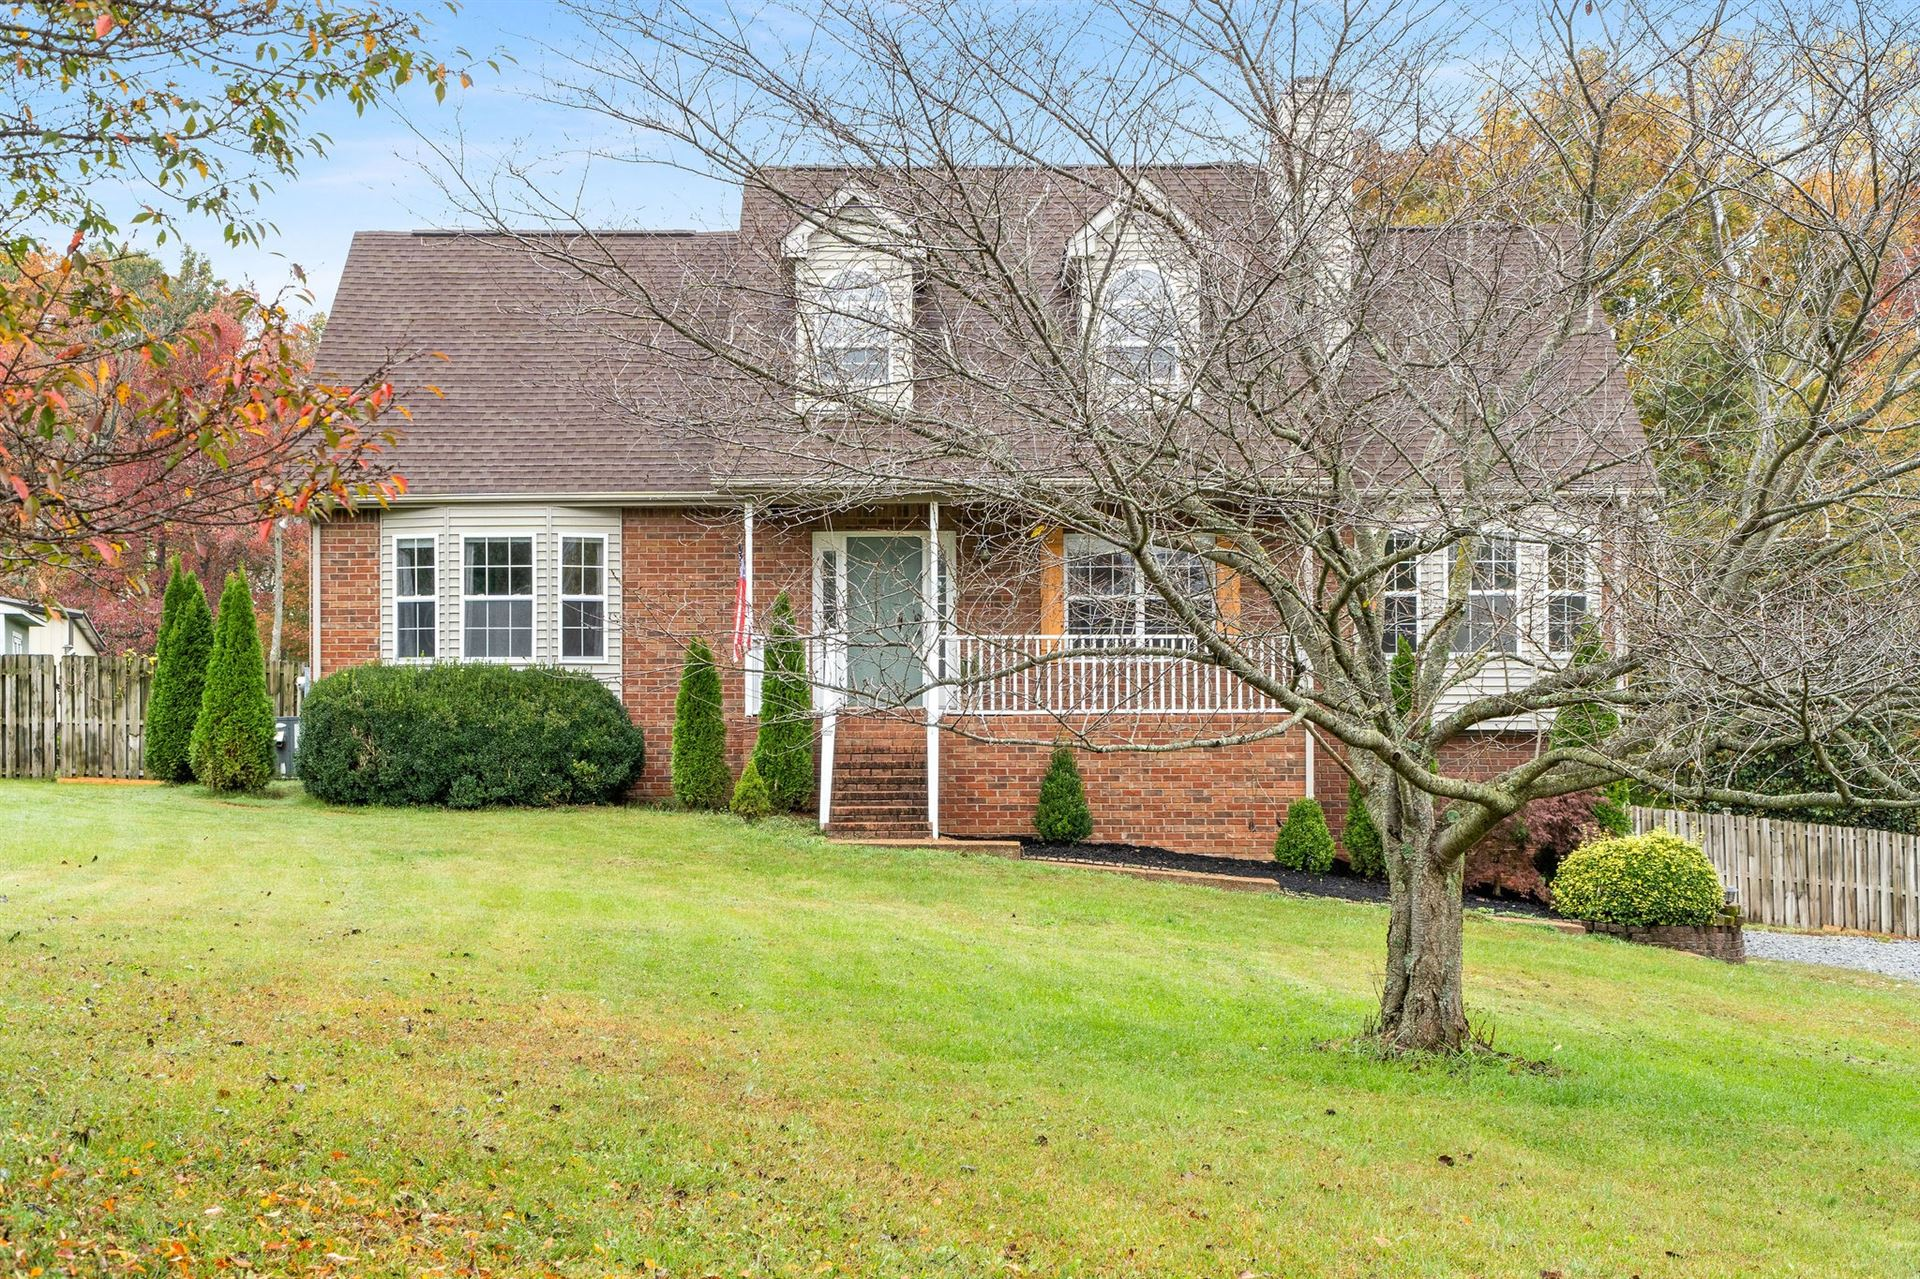 2005 Skyhawk Ct, White House, TN 37188 - MLS#: 2202027